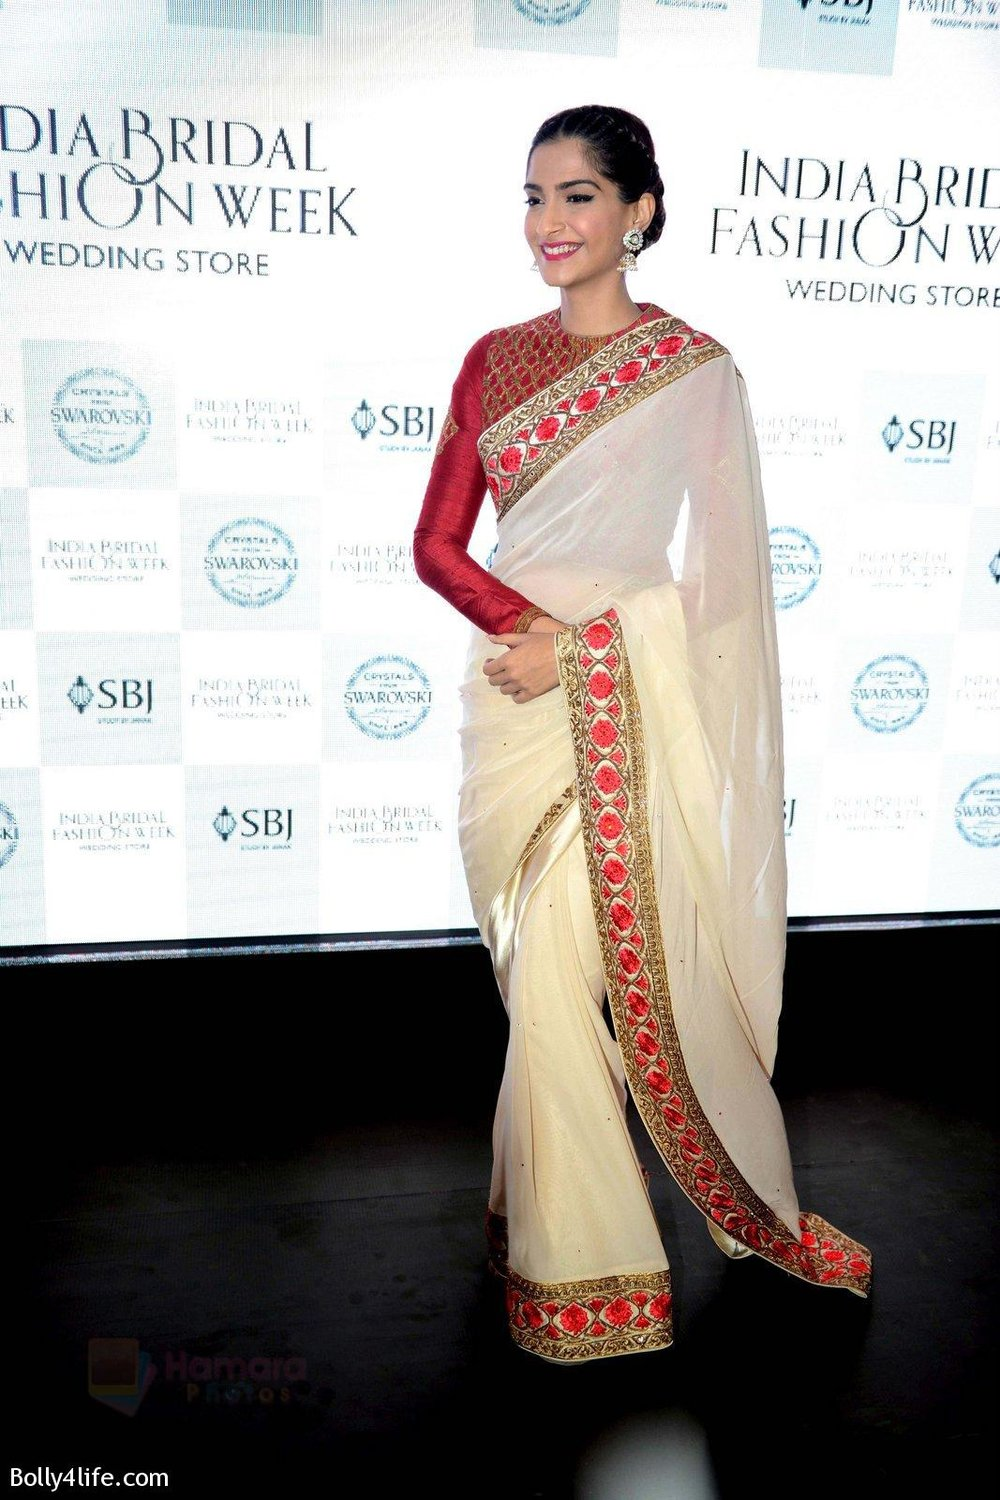 Sonam-Kapoor-during-the-launch-of-the-first-Indian-Bridal-Fashion-Week-Wedding-Store-in-New-Delhi-on-9th-Sept-2016-30.jpg